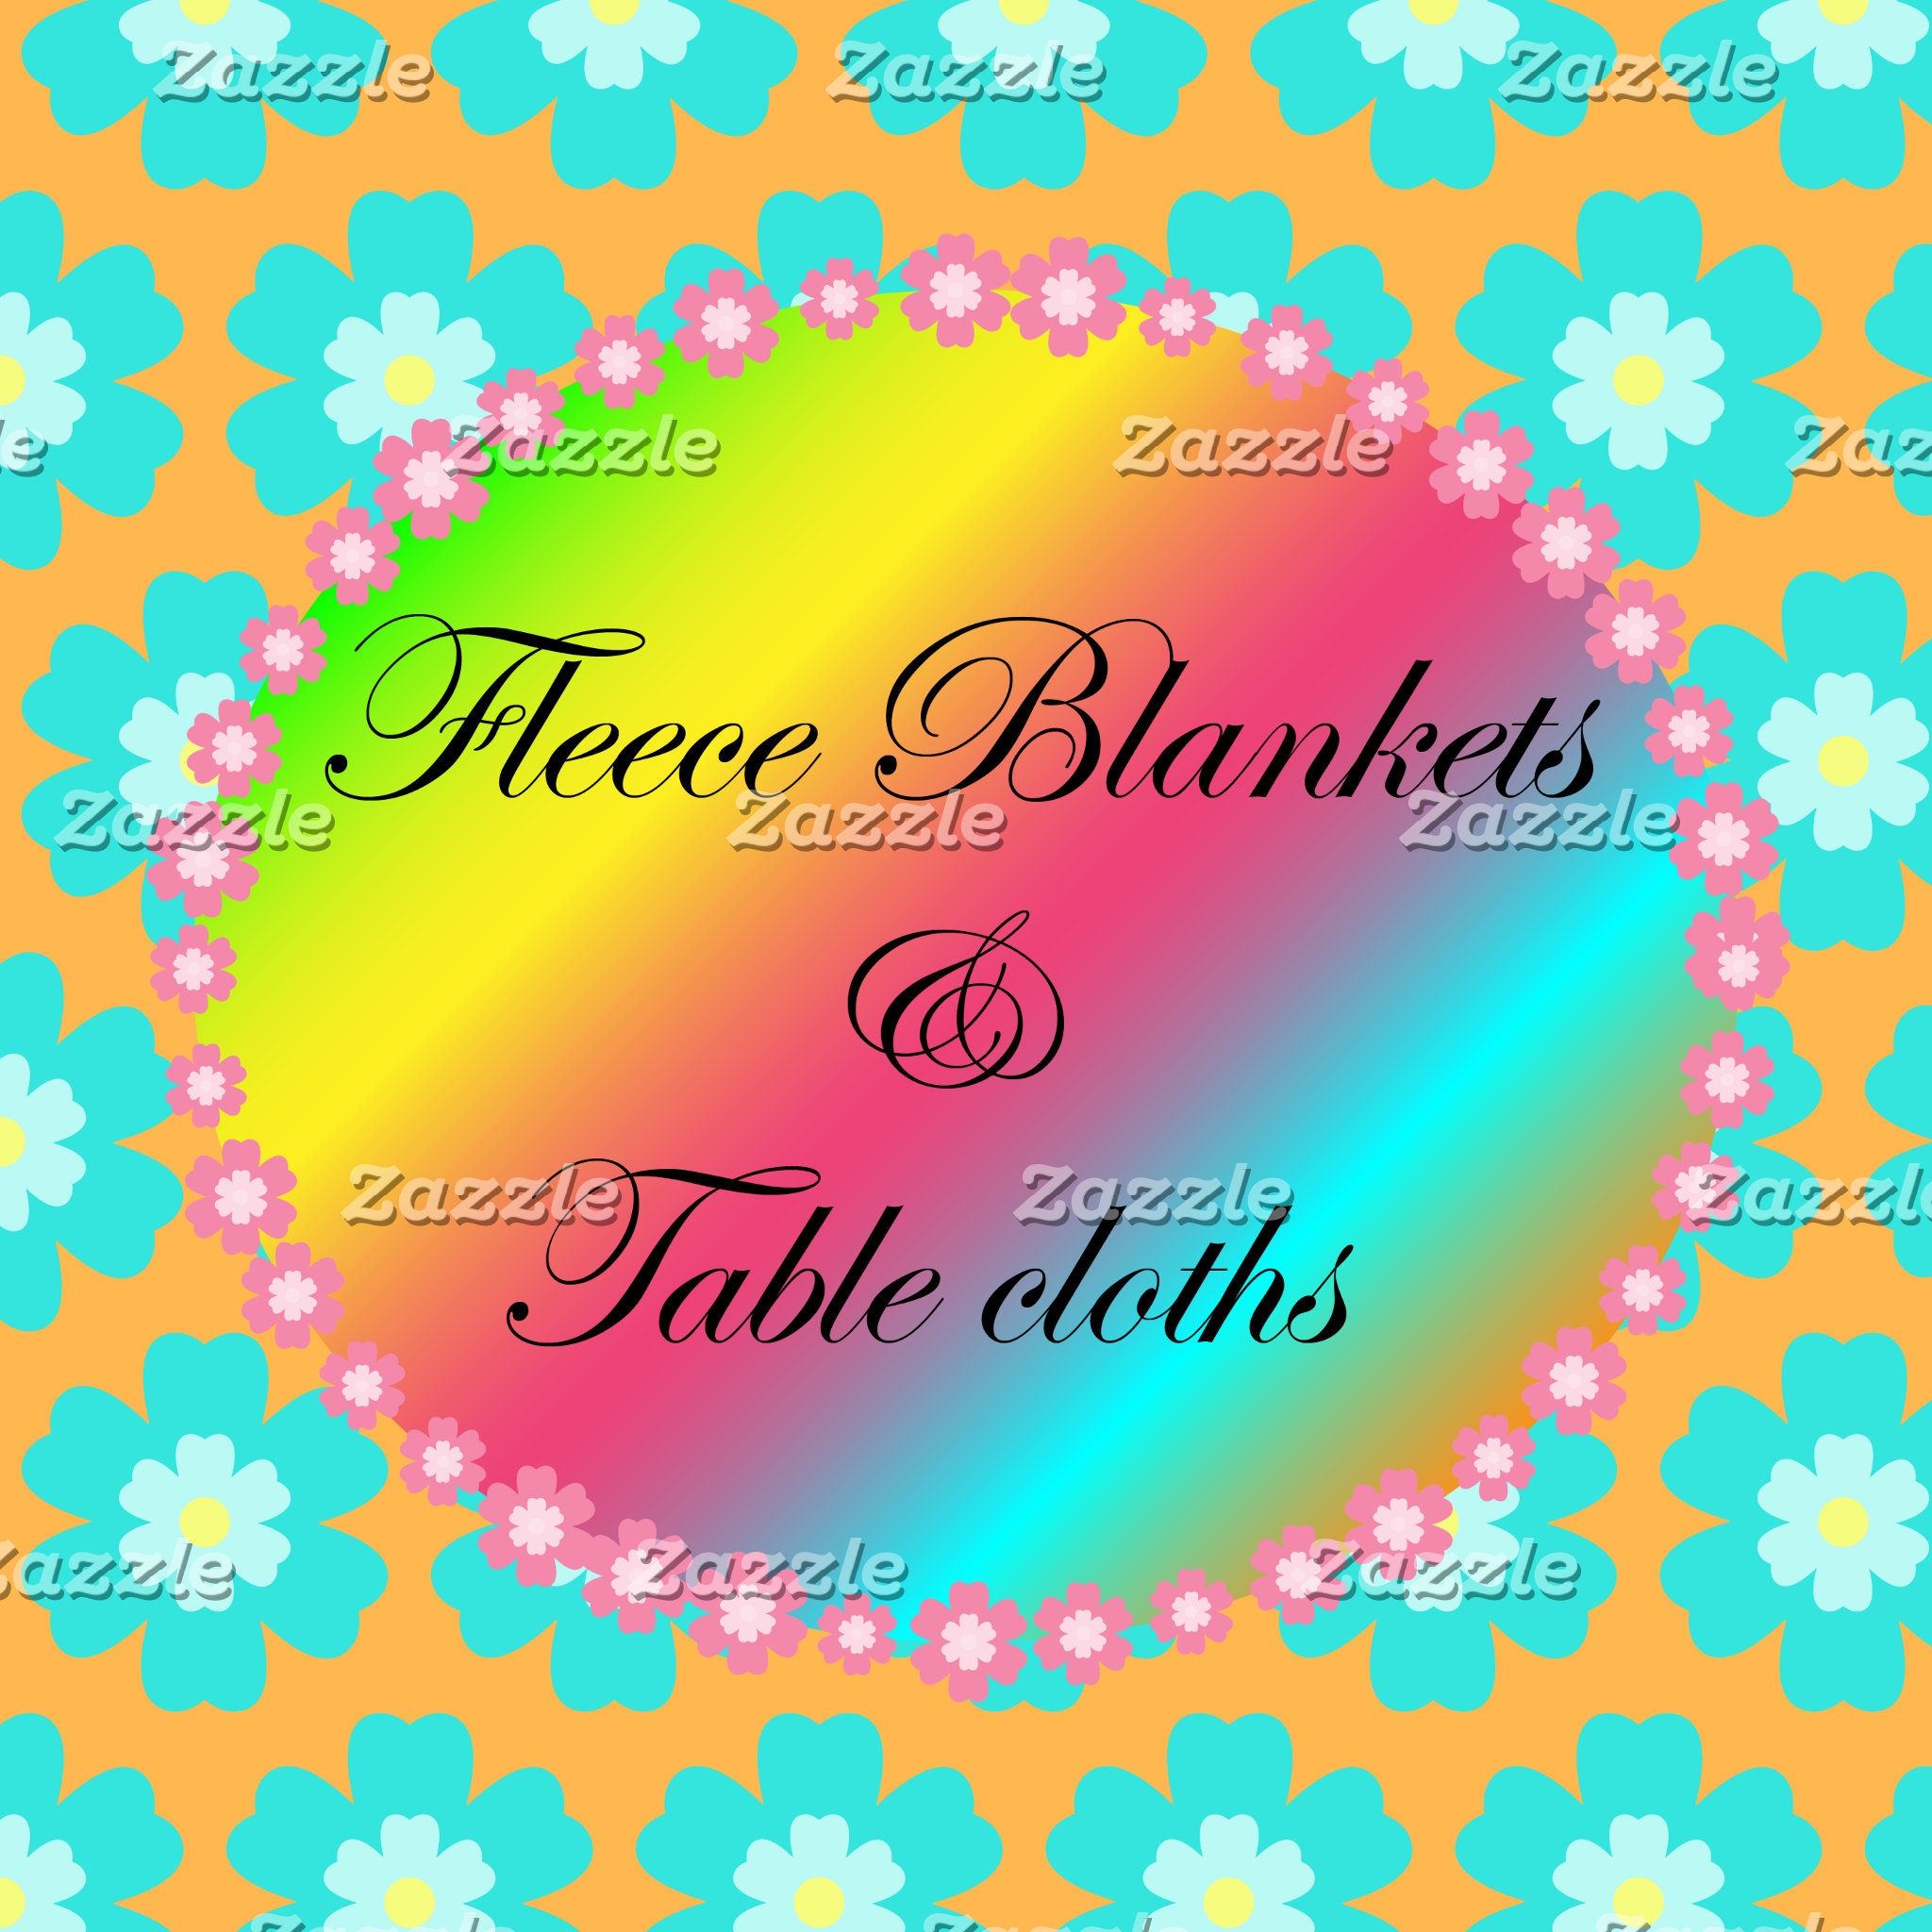 03. Fleece Blankets And Table Cloths